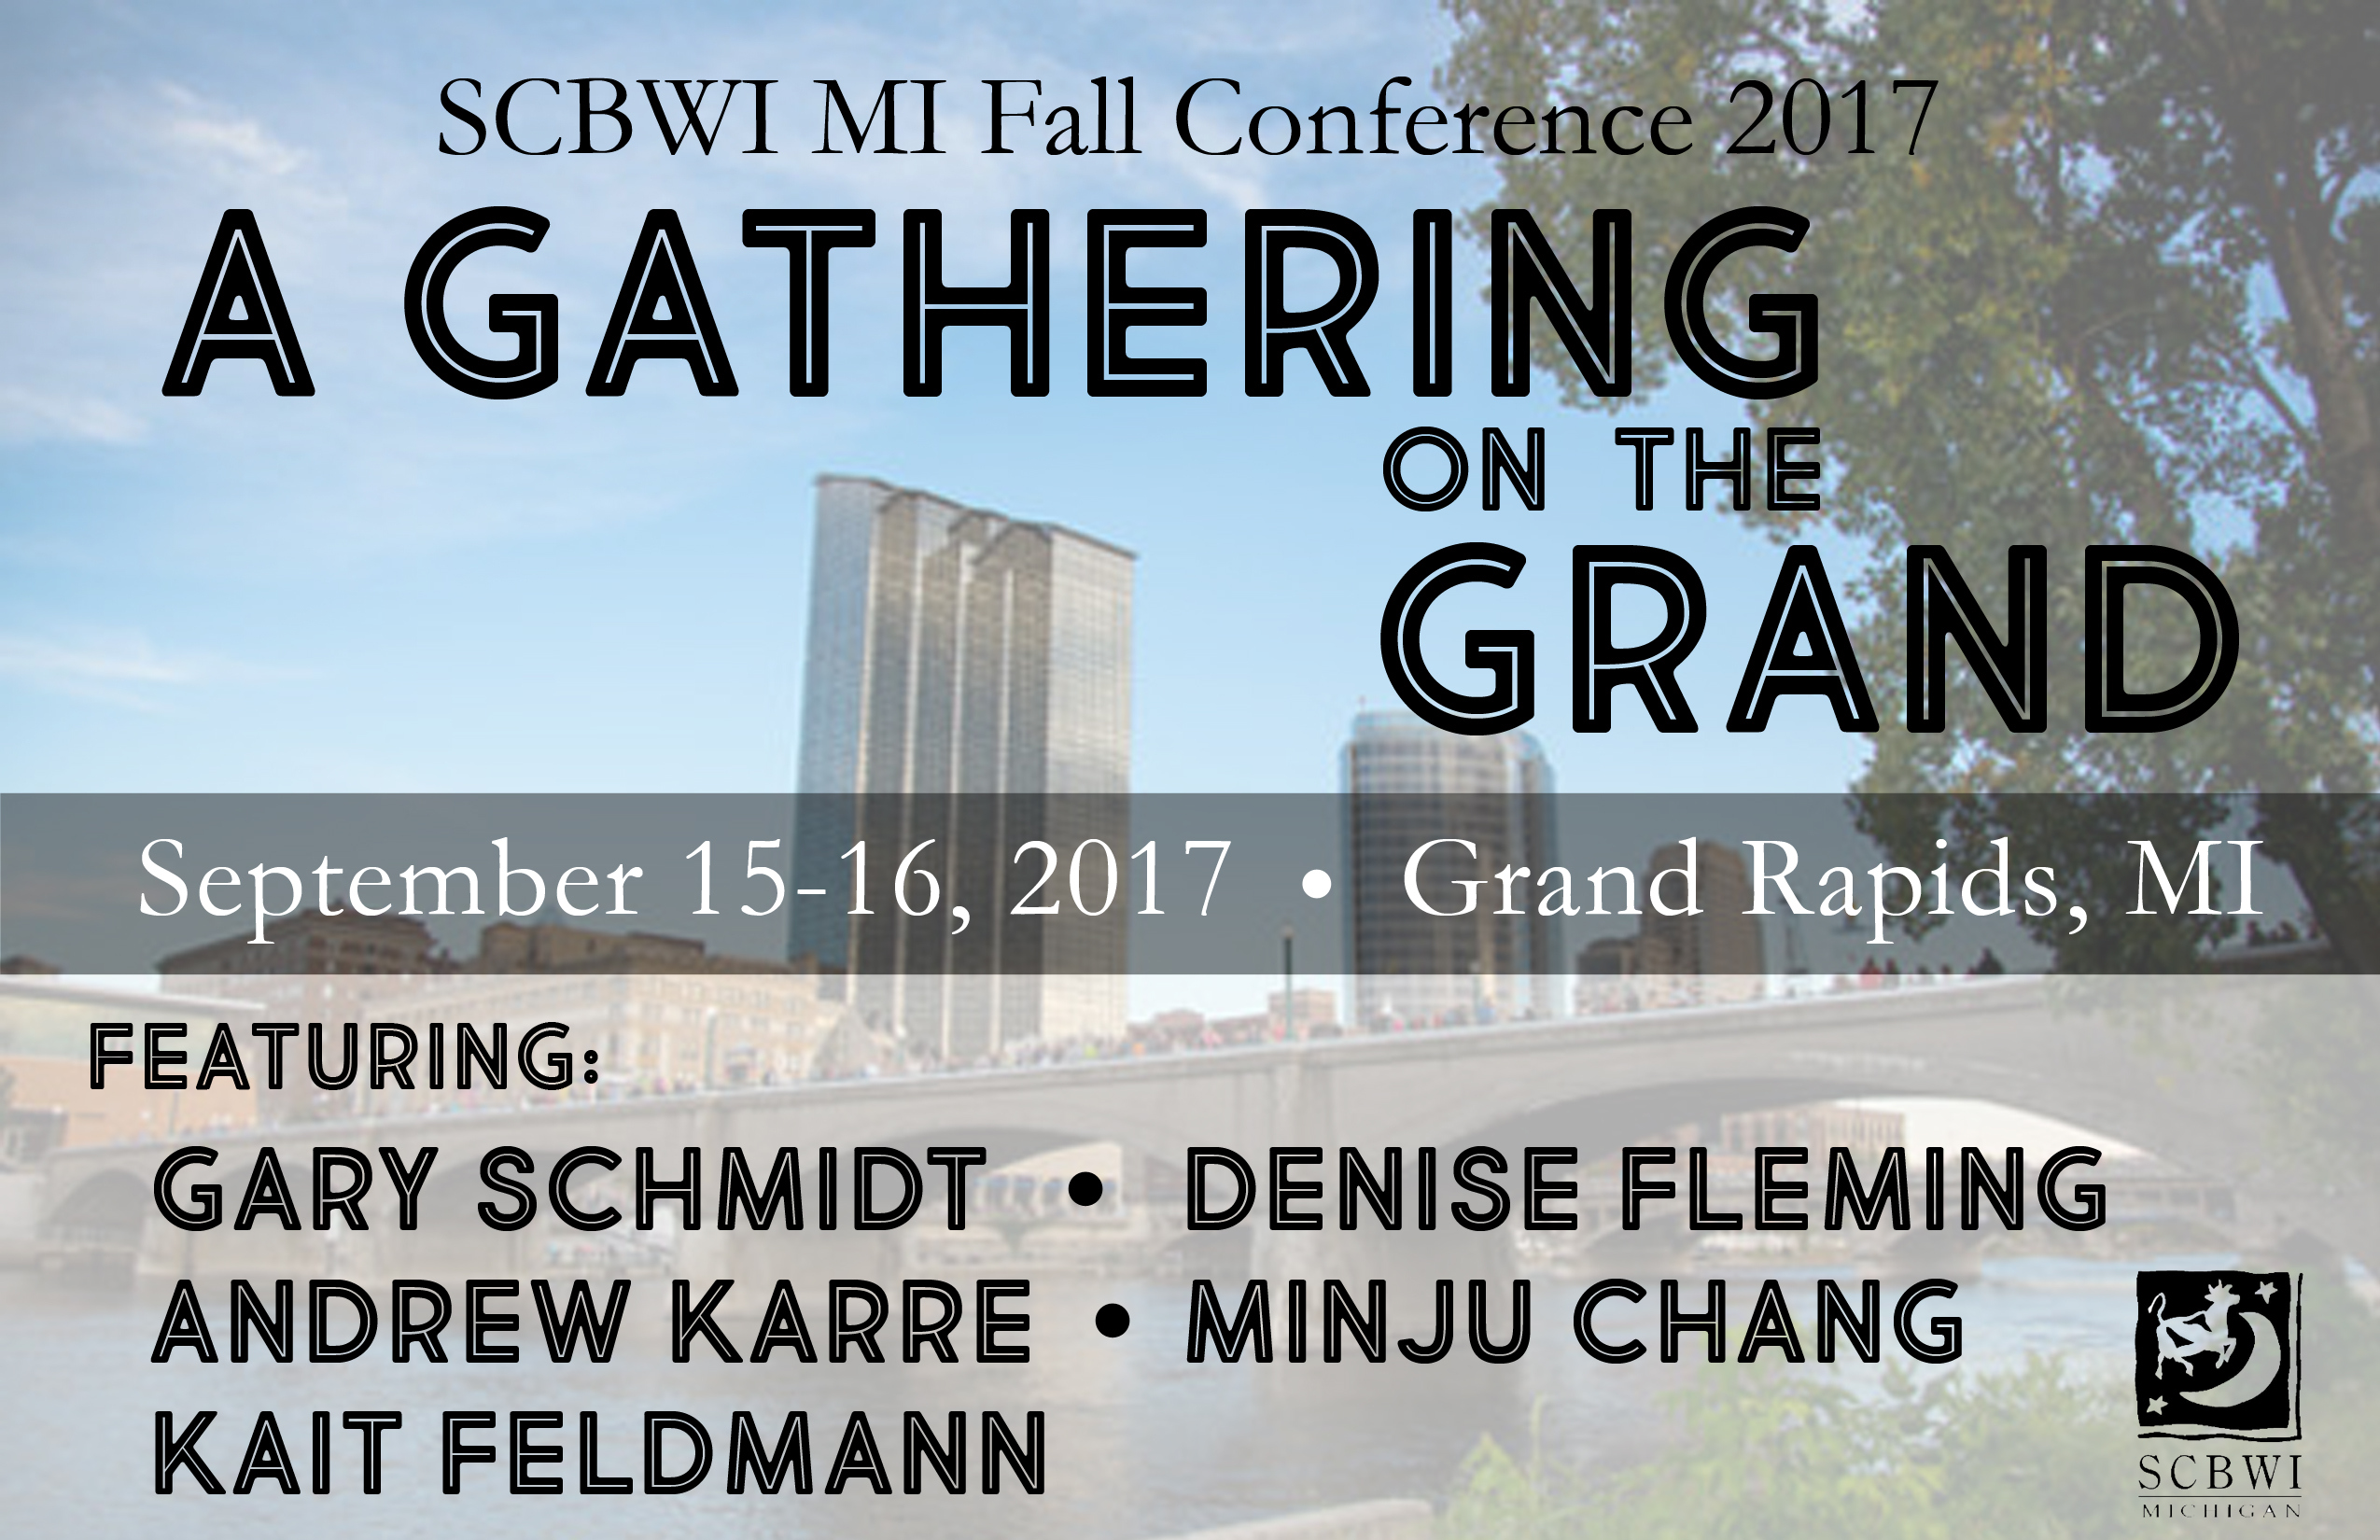 Our SCBWI-MI fall conference will be in downtown Grand Rapids at the L.V. Eberhard Center. It will kick off Friday afternoon September 15th and run all day September 16th. Novel and picture book intensives are in the works as well as well as many novel and picture book breakout sessions. The Keynote address will be presented by two-time Newbery Honor Award and Printz Award winning recipient Gary Schmidt. See below for our exciting line up and venue highlights. UPDATE! Registration for Fall Conference to open on July 22 at 8:00 AM EST. Click HERE to preview the event website including the schedule and critique information.  EARLY BIRD MEMBER RATES $45 for Friday only includes a 2 hour intensive and dinner with the gang. (A particularly great deal!) $130 forSaturdayonly. $170 for Friday and Saturday. (Add $30 to above for not-yet member rates or become a member!)  Our Fall Conference Speakers: Gary Schmidt: Gary Schmidtis a professor of English at Calvin College in Grand Rapids, Michigan. He has written over 30 books, most of them for children and young adults. He received both a Newbery Honor and a Printz Honor forLizzie Bright and the Buckminster Boyand a Newbery Honor forThe Wednesday Wars. He lives with his family on a 150-year-old farm in Alto, Michigan, where he splits wood, plants gardens, writes, and feeds the wild cats that drop by.  Denise Fleming: Denise Fleming won a Caldecott Honor for In the Small, Small Pond. She is the author and illustrator of over twenty picture books, including Buster, Lunch, Alphabet Under Construction, and Time to Sleep. Her newest books are Maggie and Michael Get Dressed and 5 Little Ducks.  Andrew Karre: Andrew Karre is the executive editor at Dutton Books for Young Readers, an imprint of Penguin Random House, focusing on YA and MG, fiction and nonfiction. He has published first novels by such noted authors as Maggie Stiefvater, A.S. King, Vaunda Micheaux Nelson, Blythe Woolston, Carrie Mesrobian, and E.K. Johnston.  Minju Chang